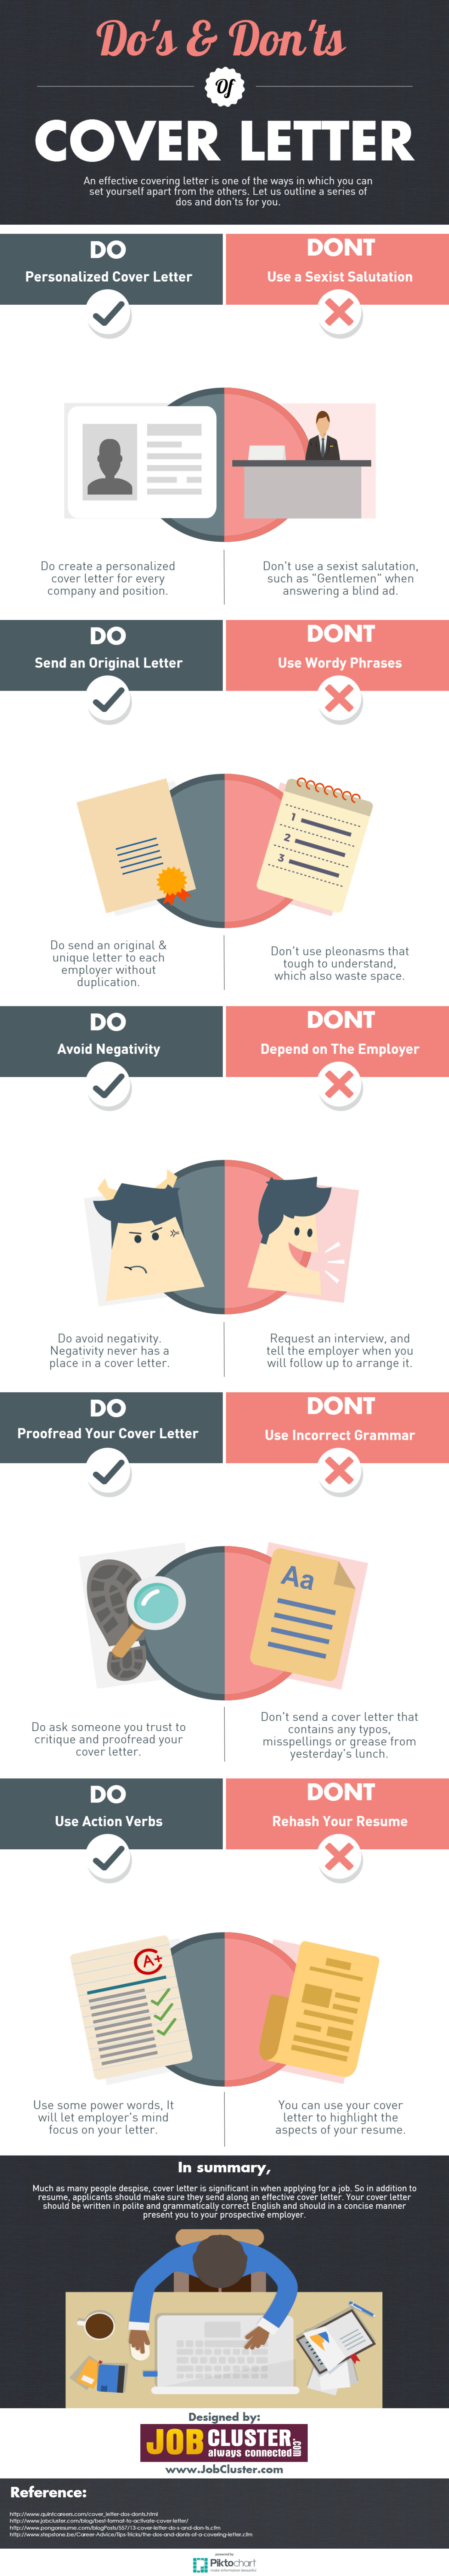 Do's and Don'ts of Writing a Cover Letter